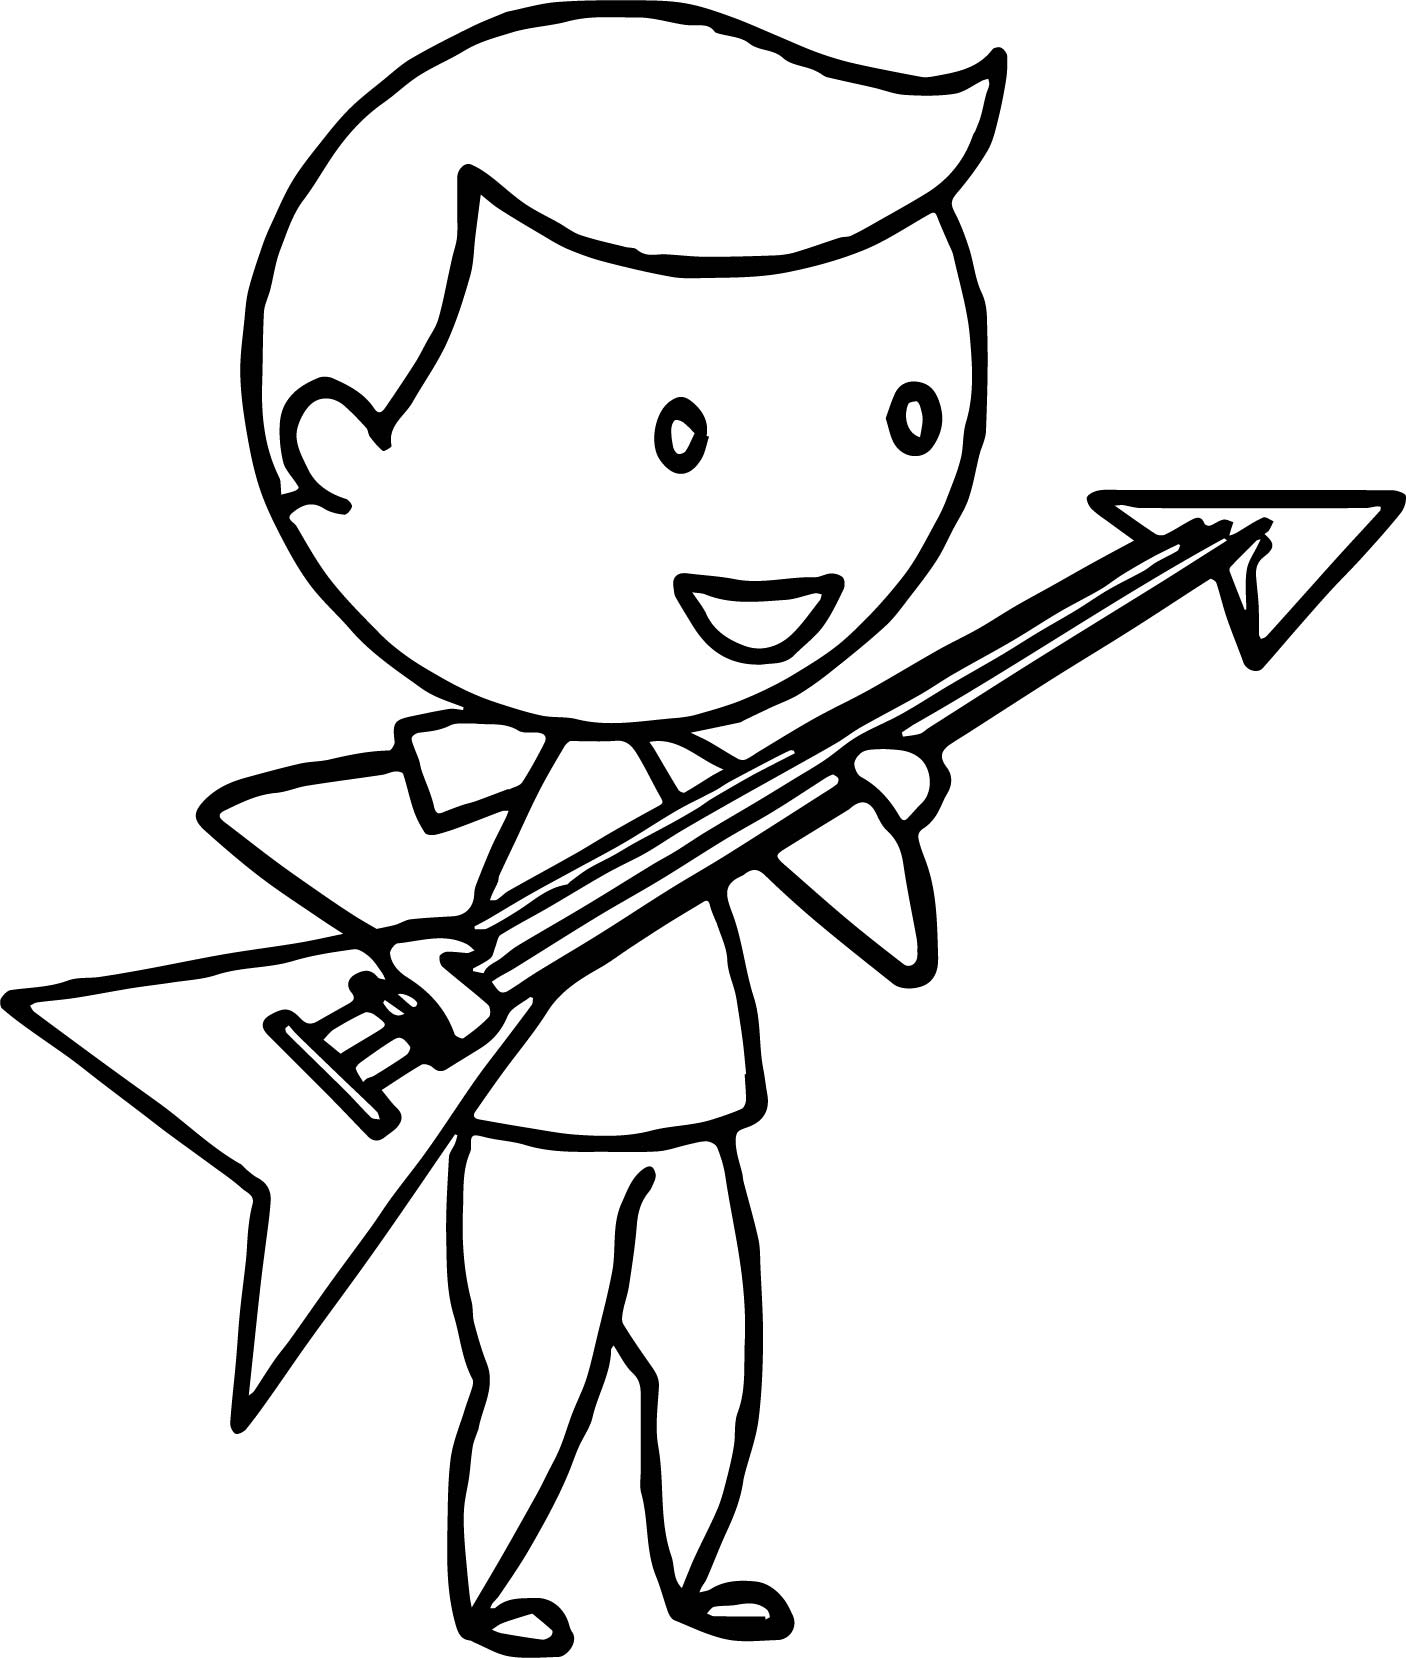 1406x1658 Boy Playing The Electric Guitar Coloring Page Wecoloringpage